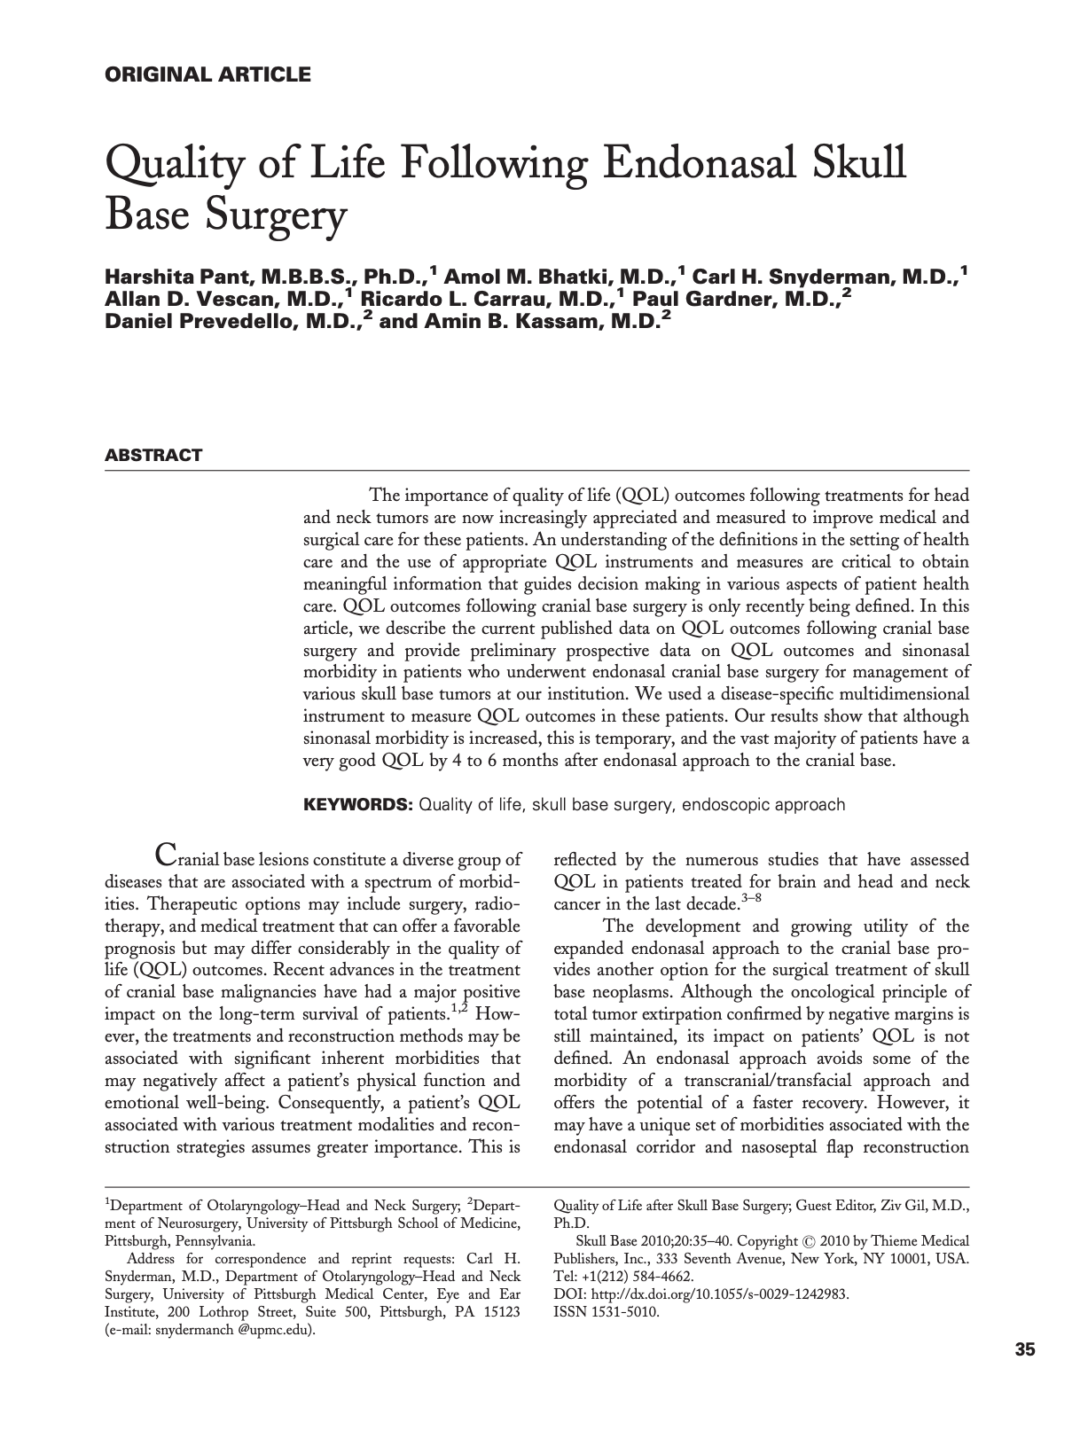 Quality of Life Following Endonasal Skull Base Surgery